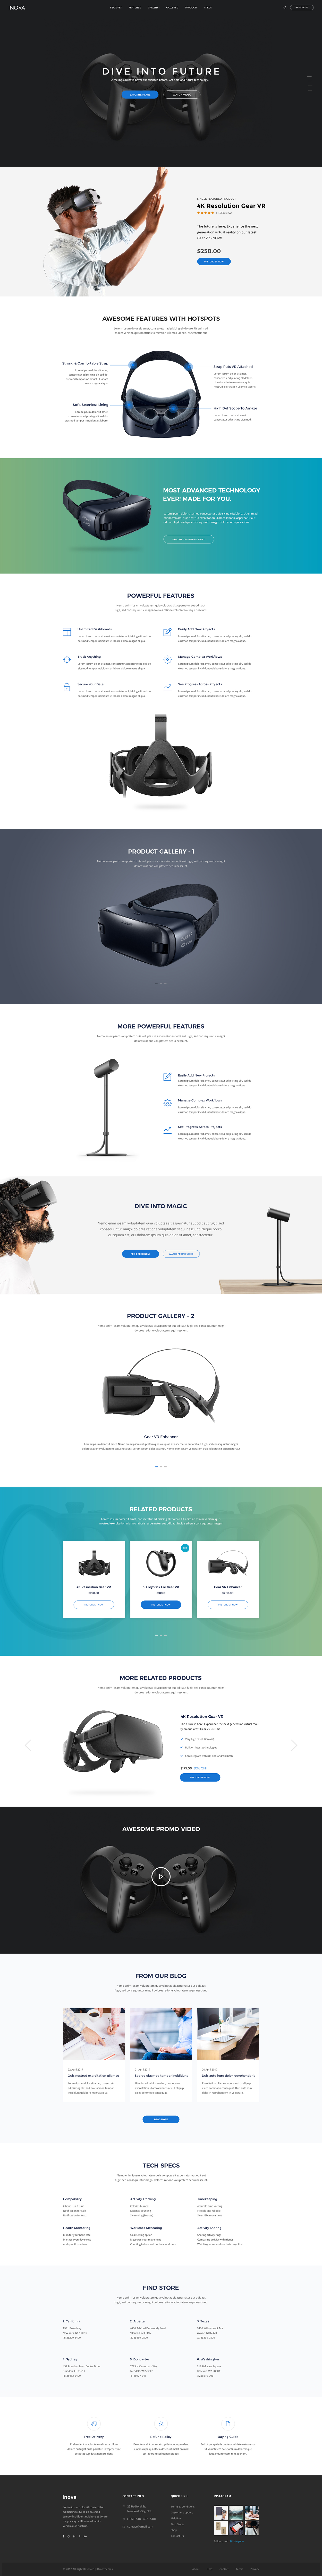 inova product saas app startup marketing book landing page psd template by droitthemes. Black Bedroom Furniture Sets. Home Design Ideas